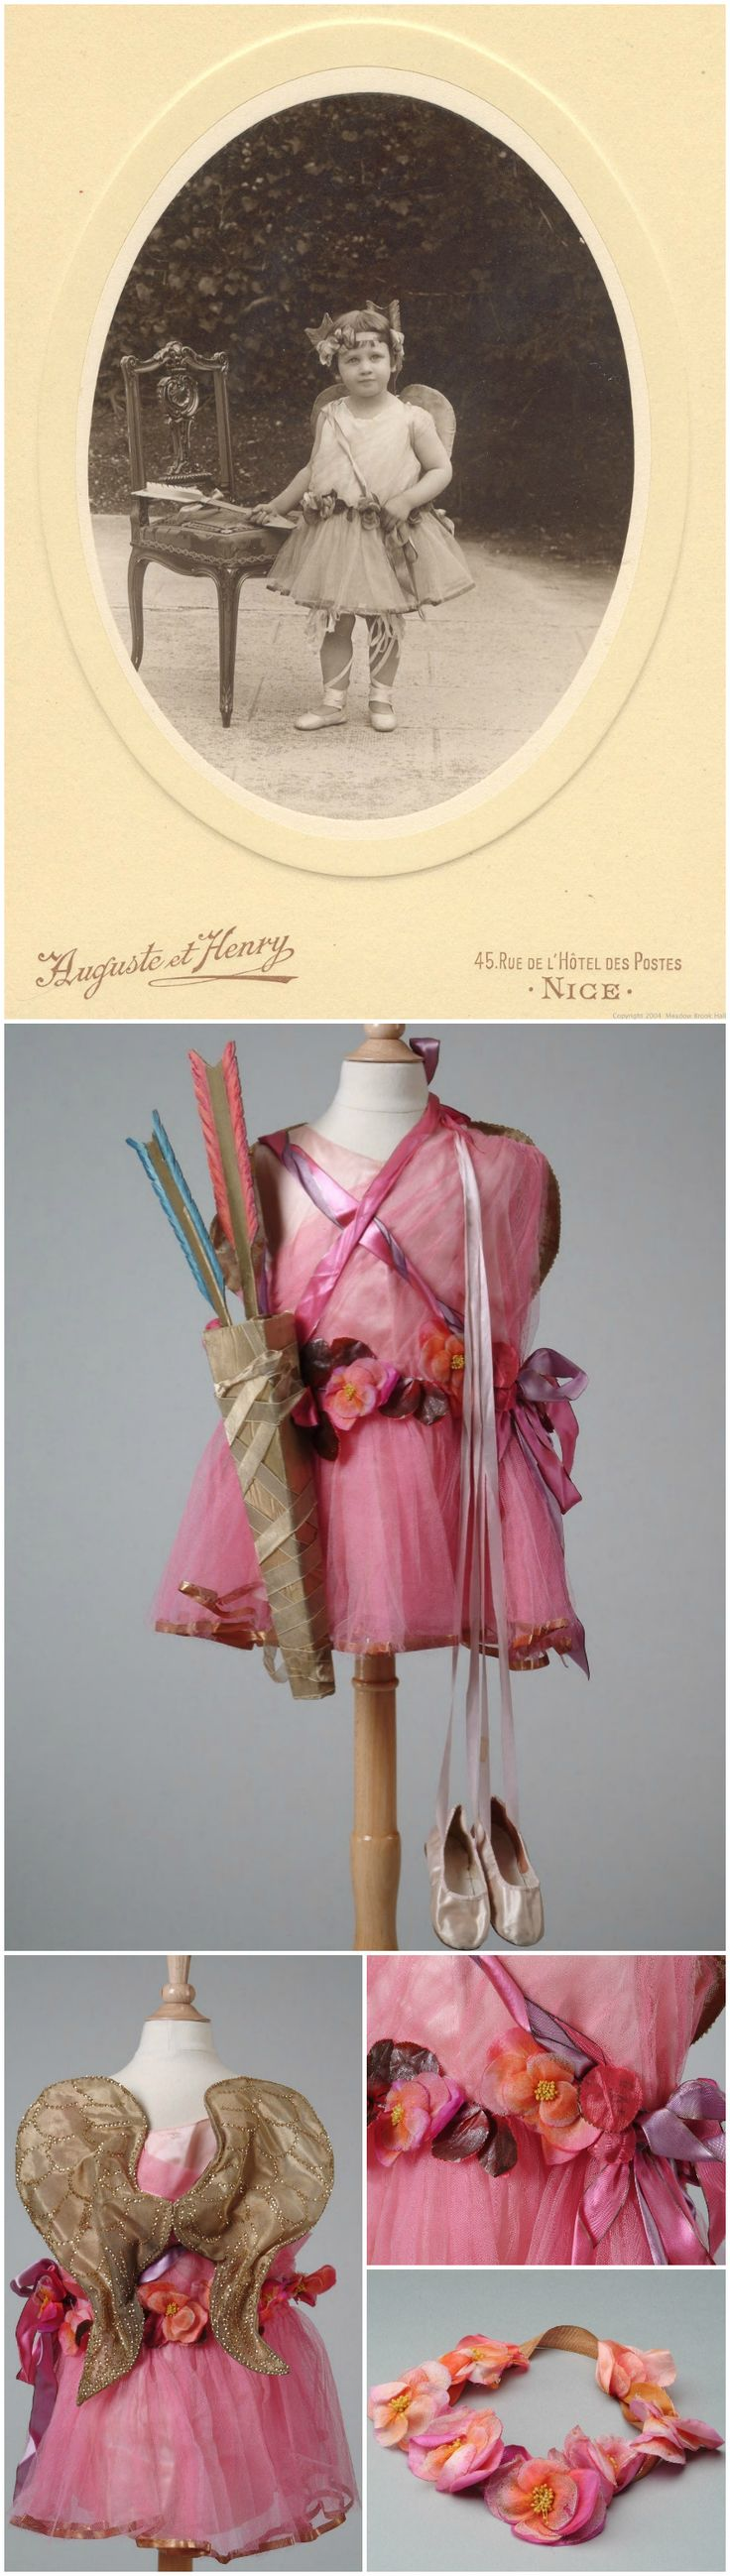 Girls angel costume of pink silk crepe with skirt and draping of bright pink silk net,  wings of gold metallic tissue, satin slippers, flowered headband, and quiver of gold arrows. Callot Soeurs, Paris. 1922. Meadow Brook Hall Historic Costume Collection. Worn by Anna Margaret Dodge, youngest daughter of Matilda Rausch Dodge Wilson, while in Nice, France. She was photographed wearing the costume by Auguste et Henry on March 6, 1923.